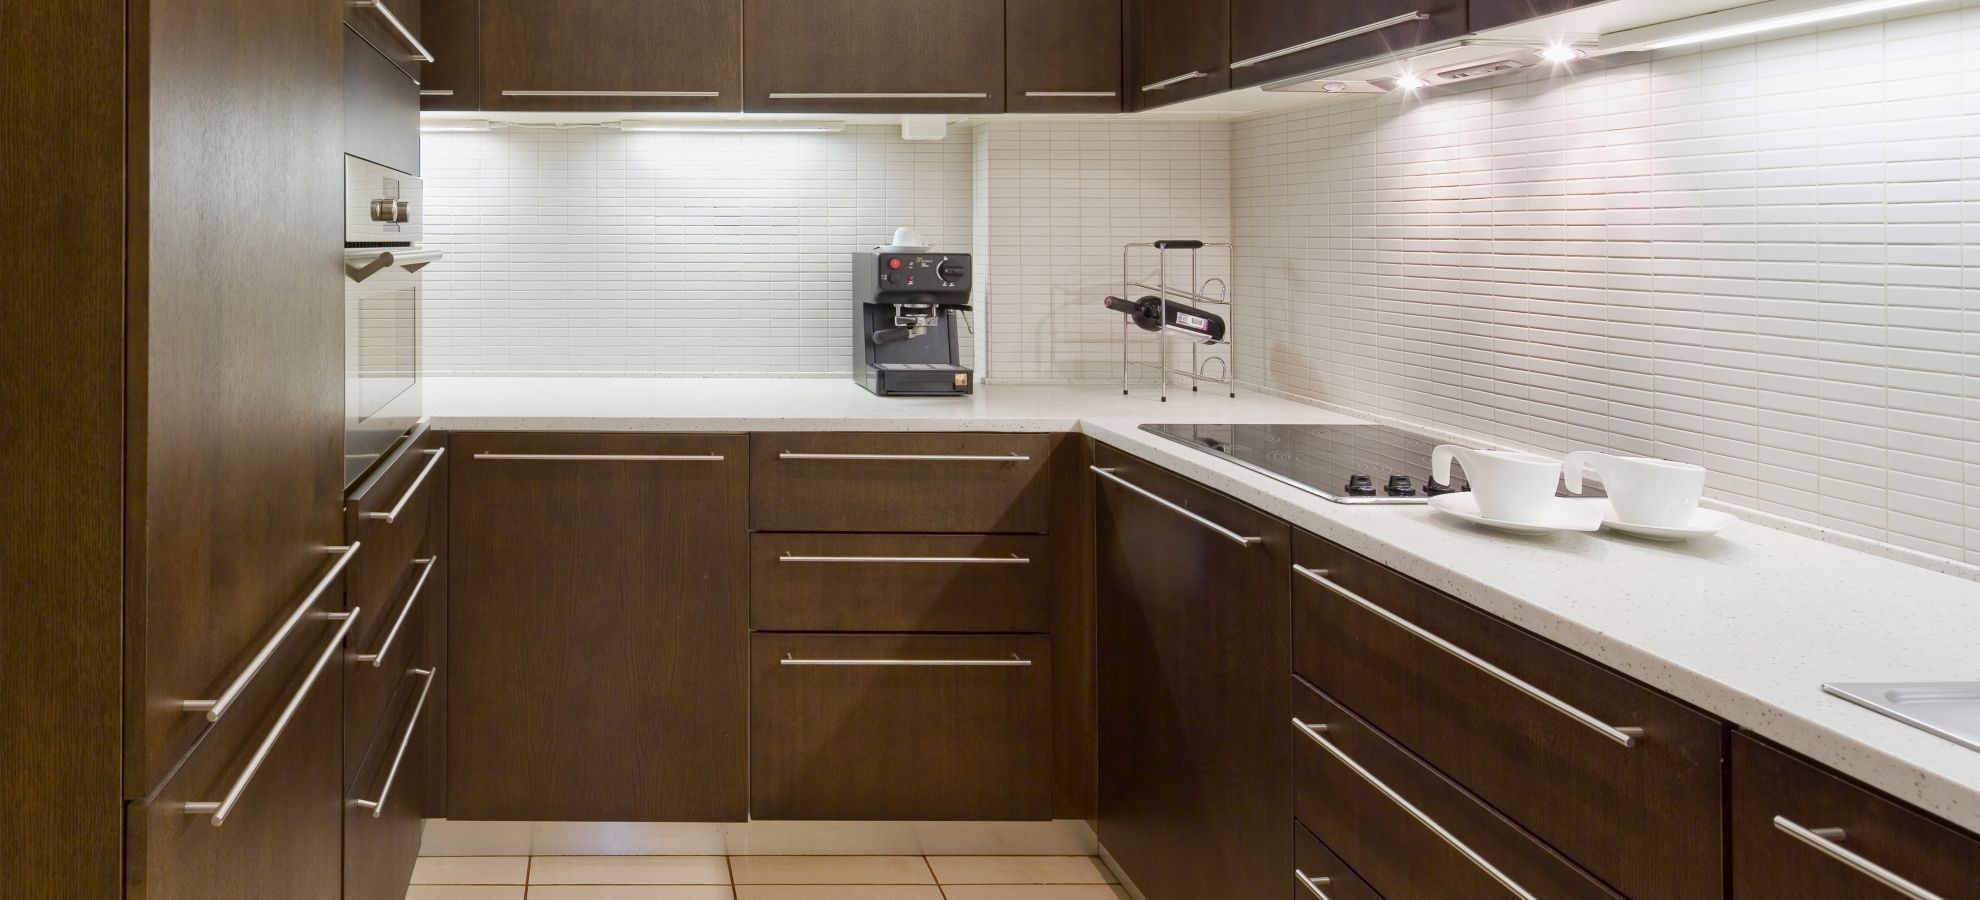 Mamaison-Hotel-Pokrovka-Moscow-Presidential-Suite-Kitchen.jpg